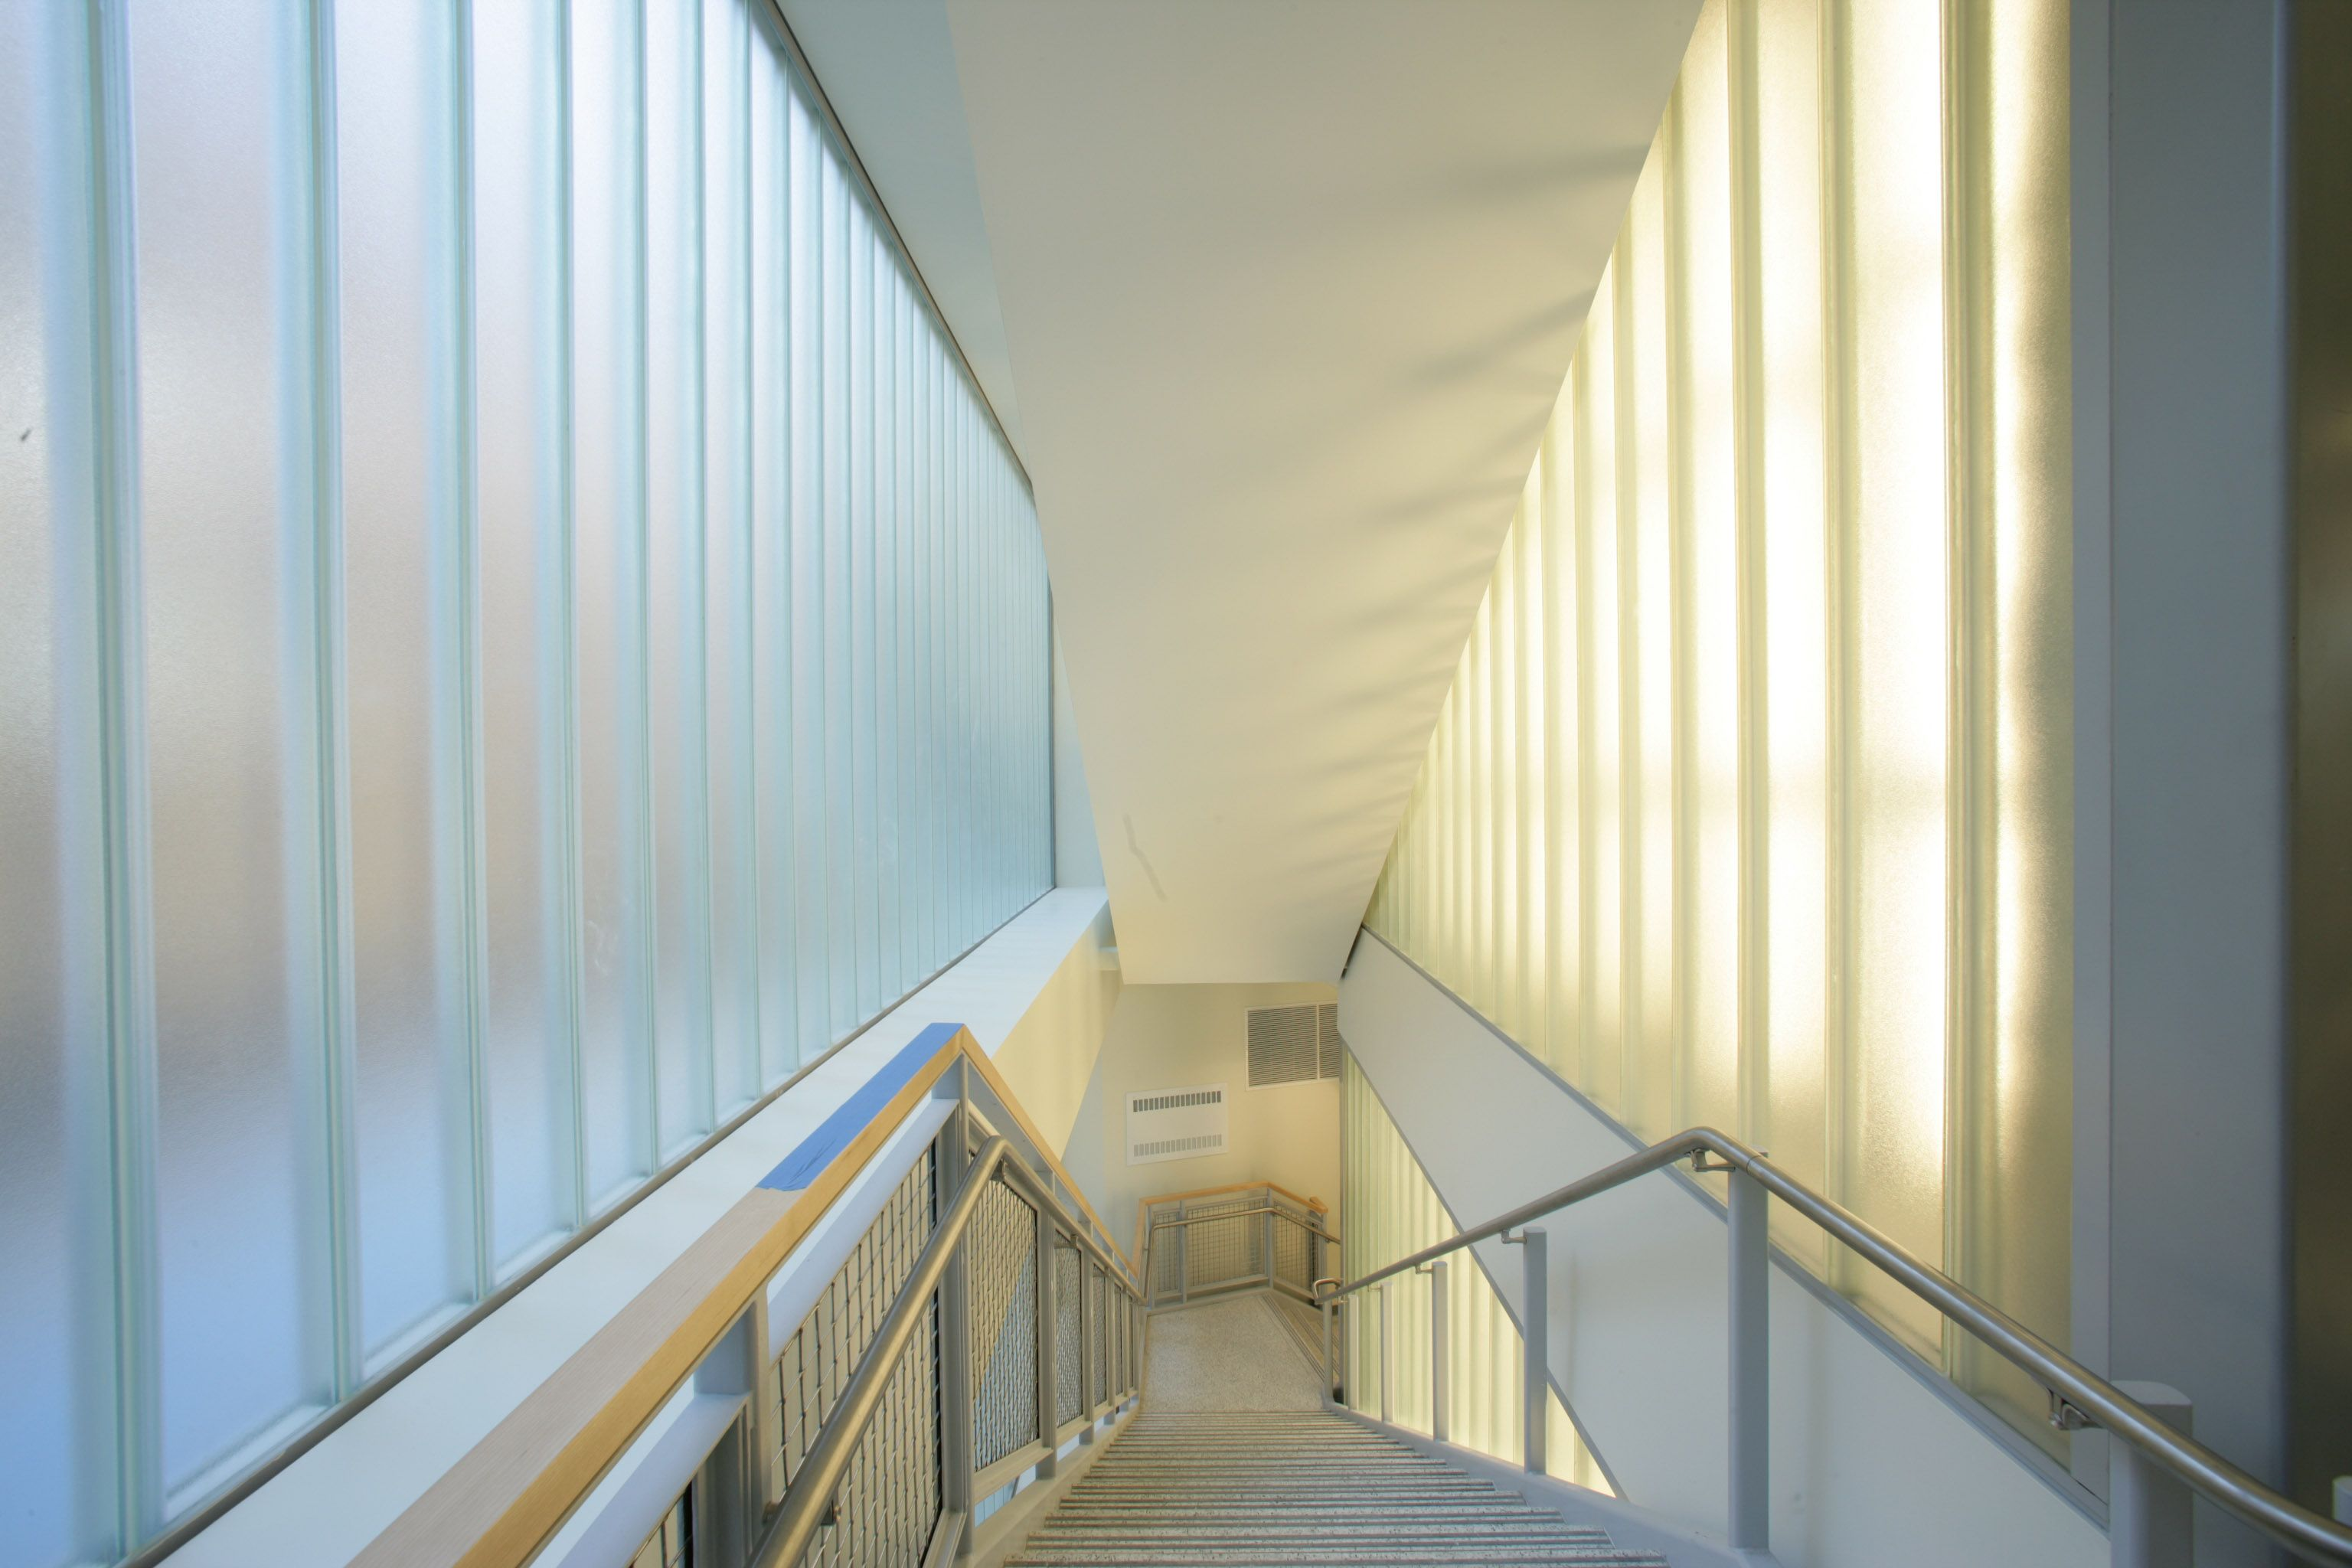 Bendheim Wall Systems Inc Material Bendheim Wall Systems Channel Glass Channel Glass Wall Systems Glass